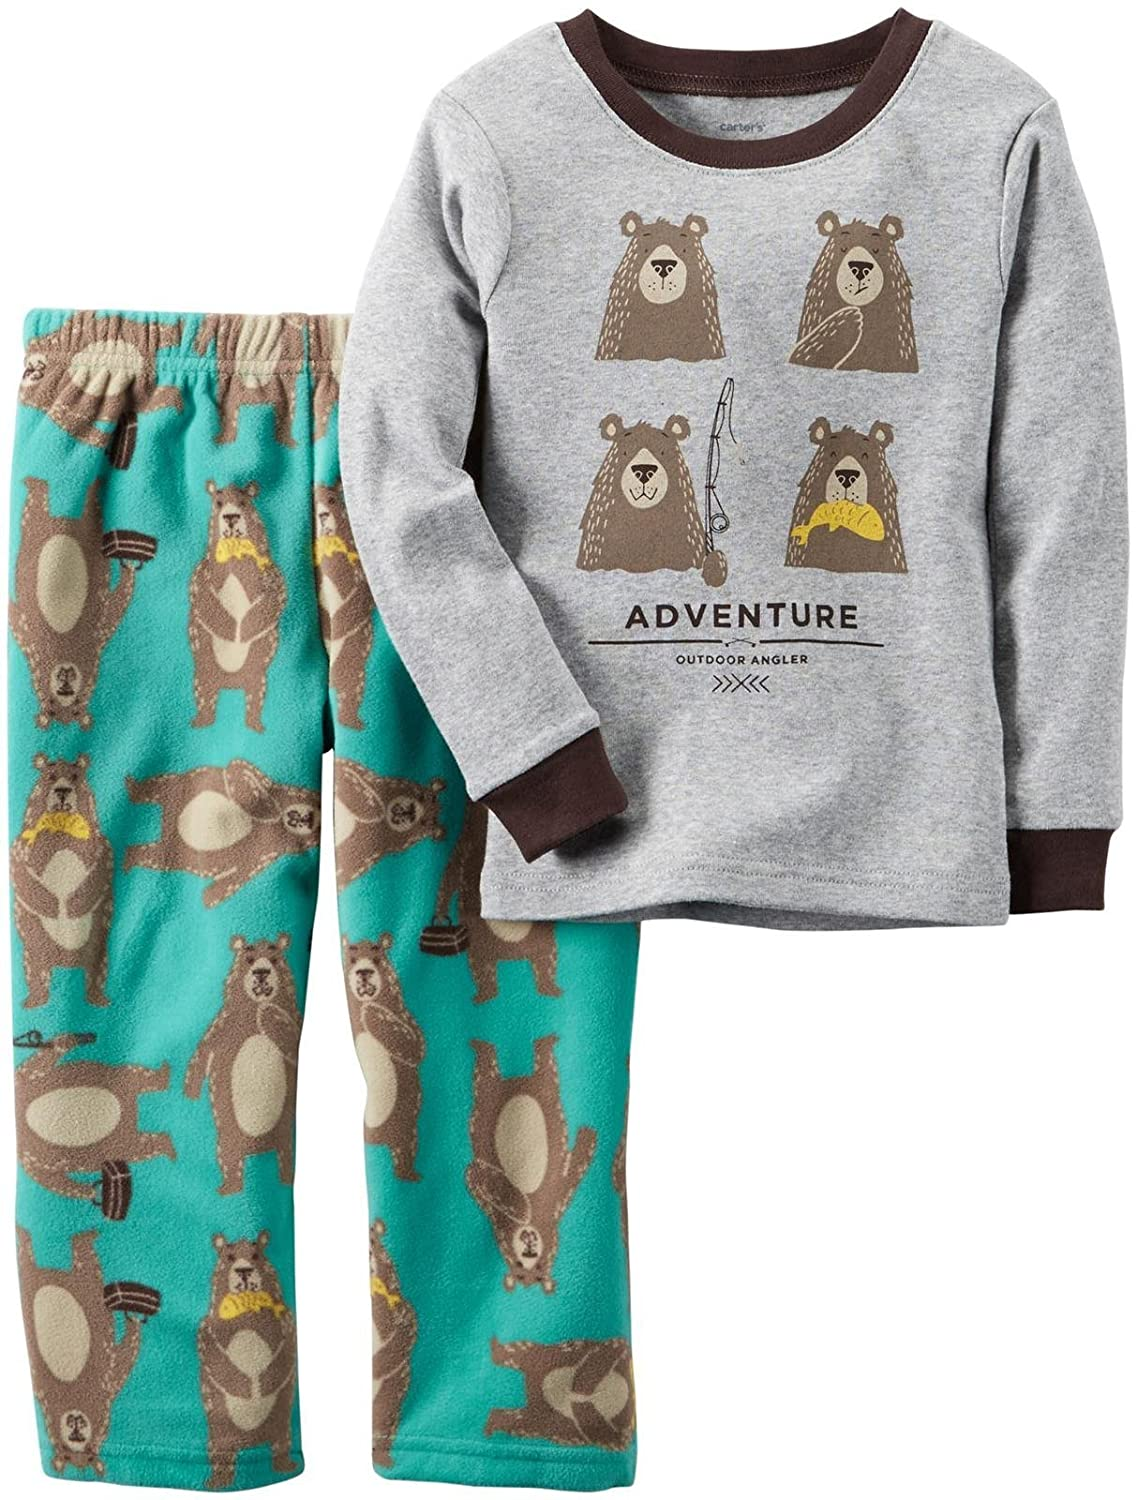 ビッグ割引 Carter's SLEEPWEAR ベビーボーイズ 12 Months 12 Adventure Carter's Bear SLEEPWEAR B01J4AQQ04, ベスト錦鯉:4cea3186 --- turtleskin-eu.access.secure-ssl-servers.info